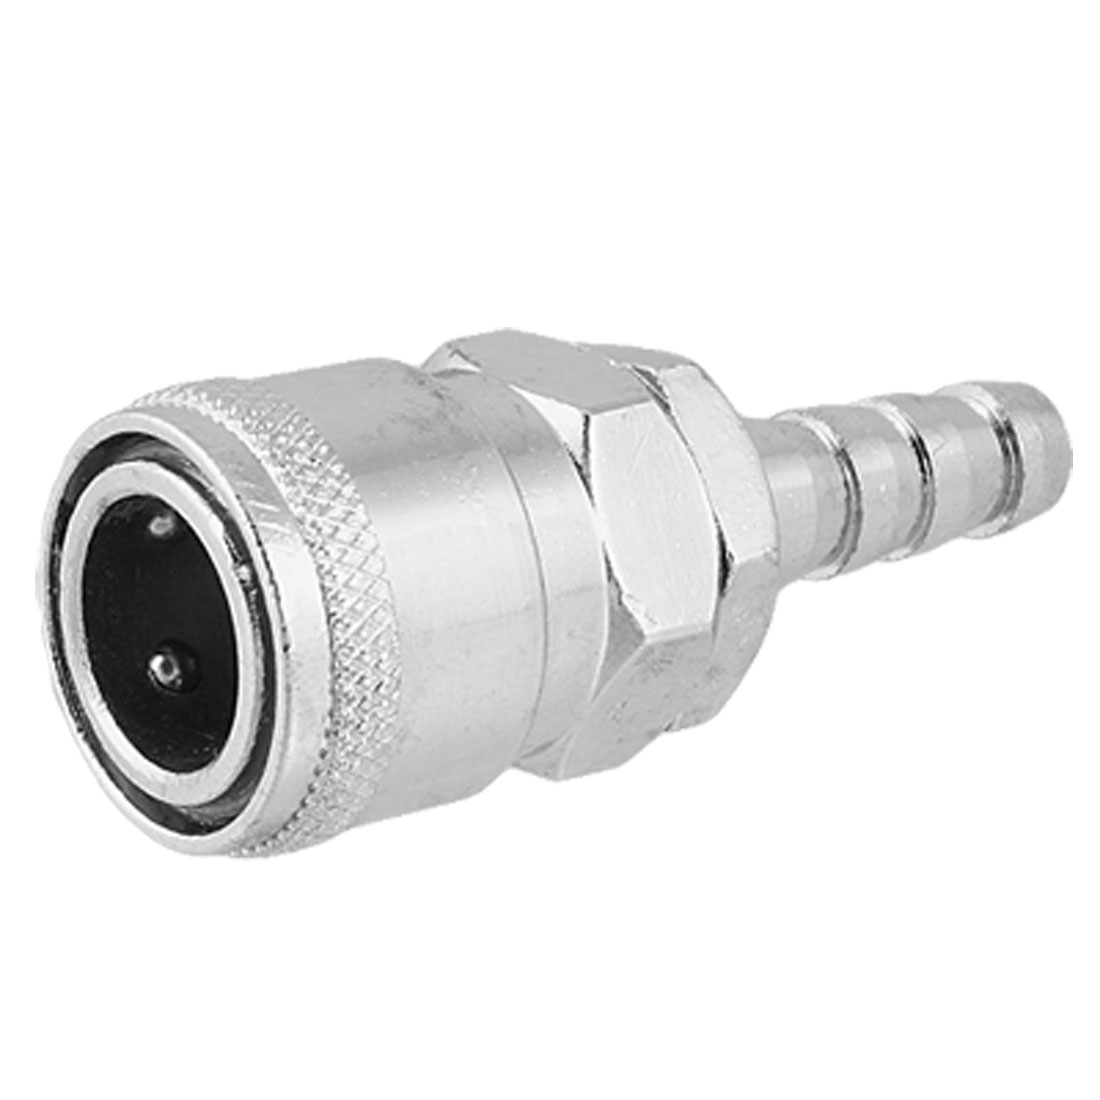 Pneumatic Air Pressure Pipe 11mm Metal Quick Coupler Silver Tone